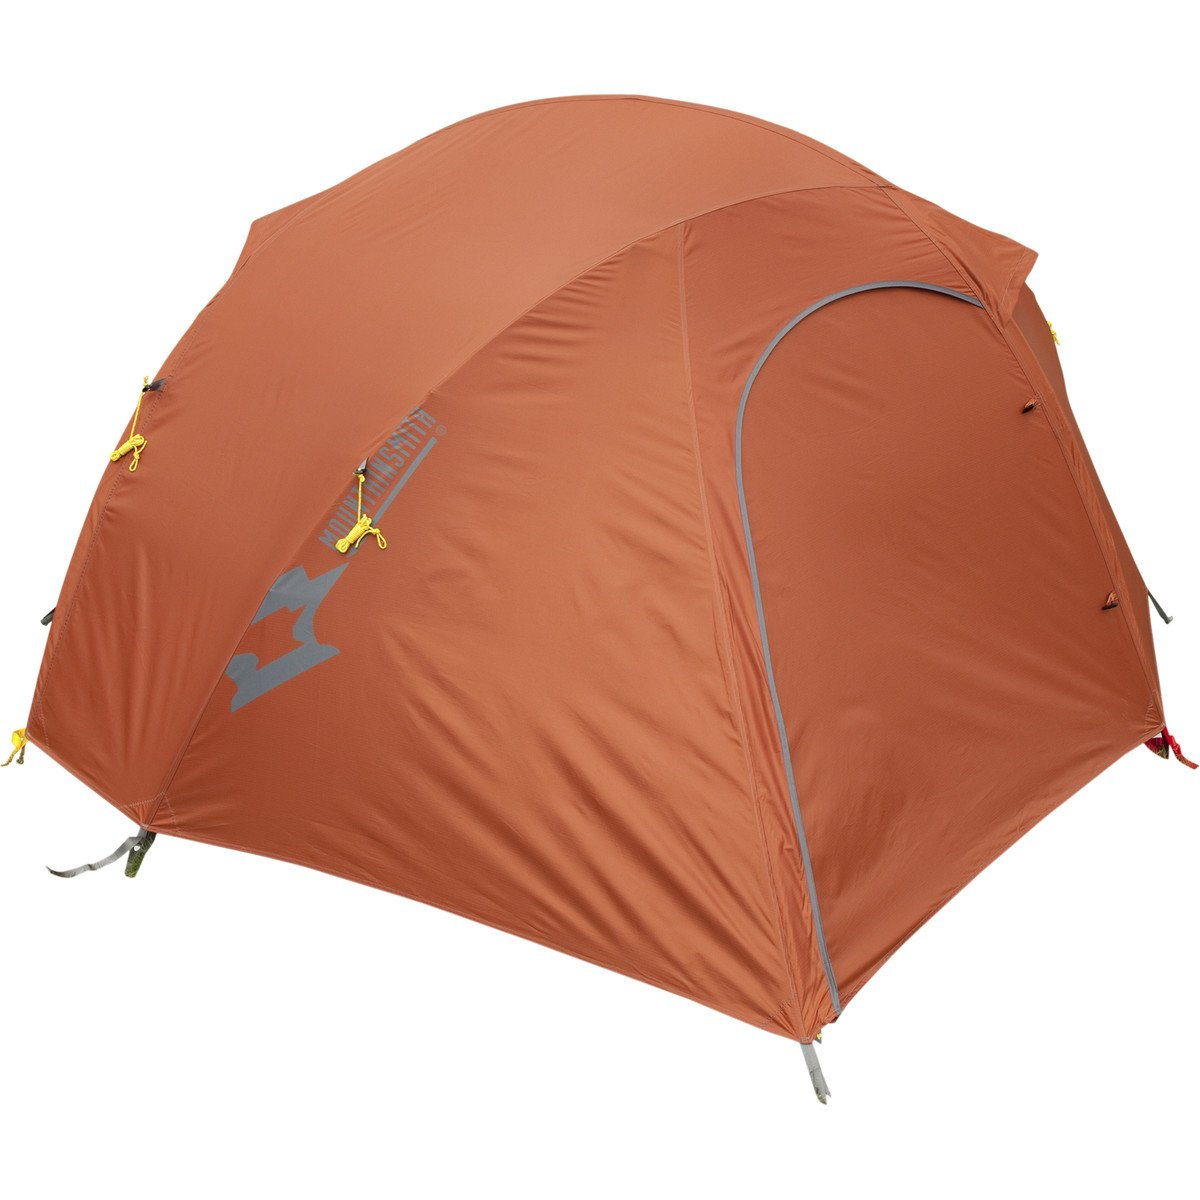 Mountainsmith Mountain Dome 2 Tent